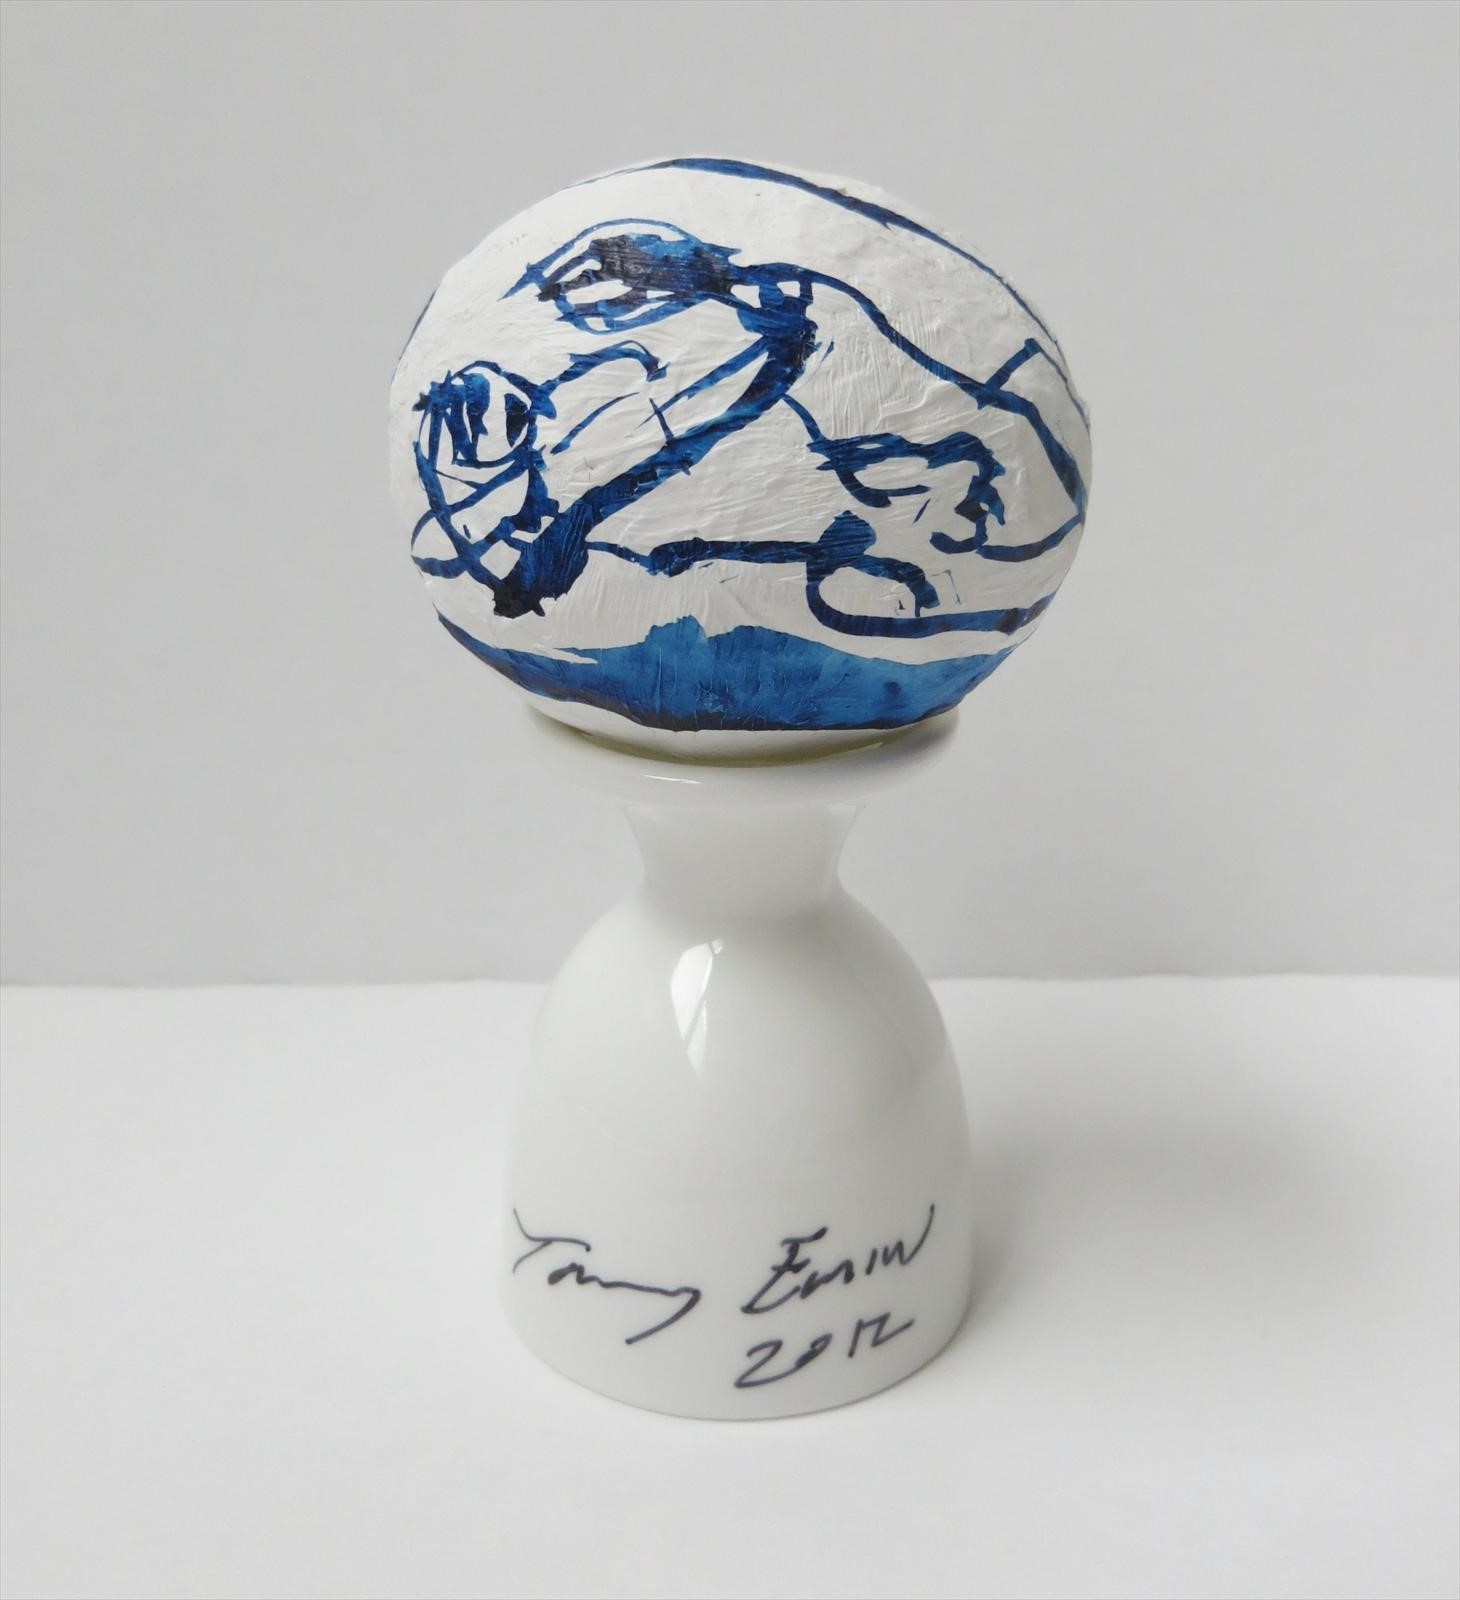 Egg Lady by Tracey Emin